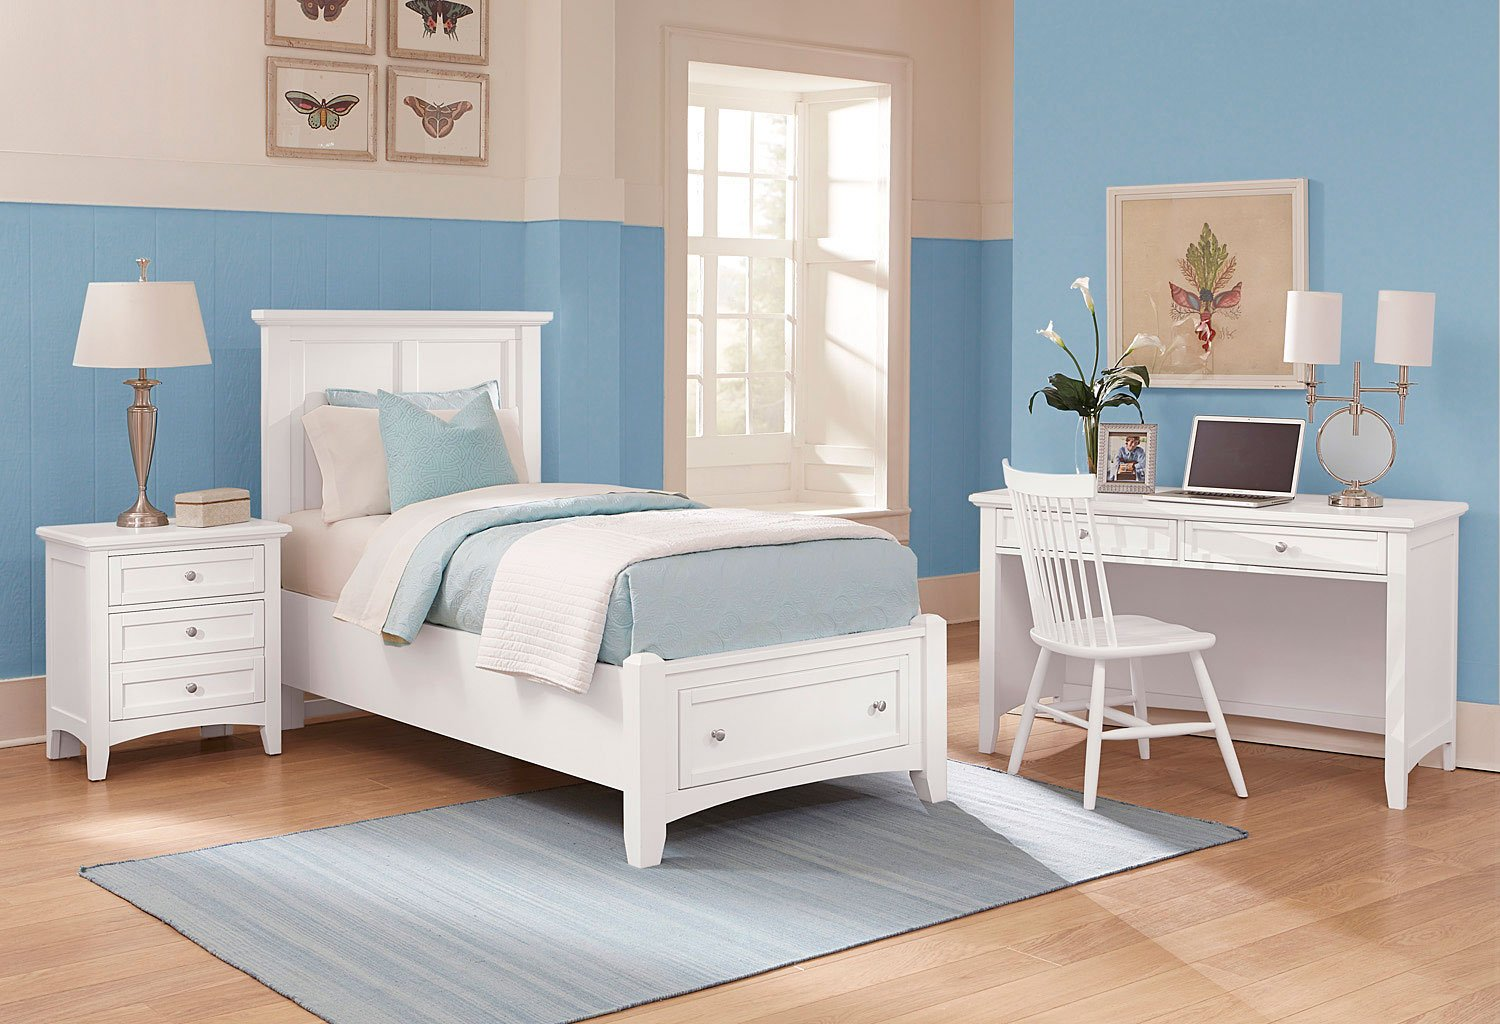 Bonanza youth mansion storage bedroom set white vaughan - Youth bedroom furniture with storage ...